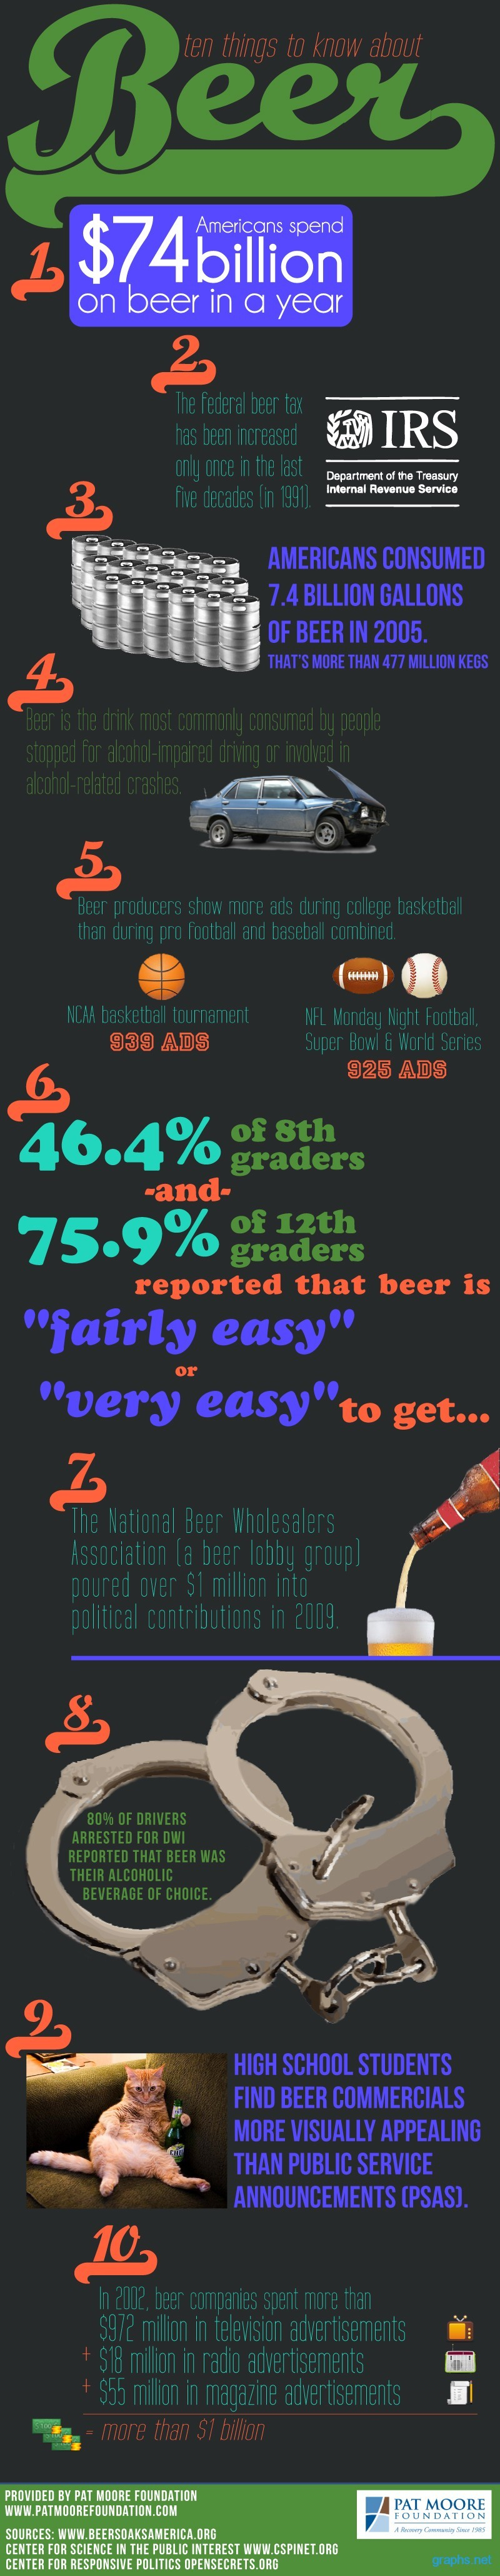 beer facts and myths